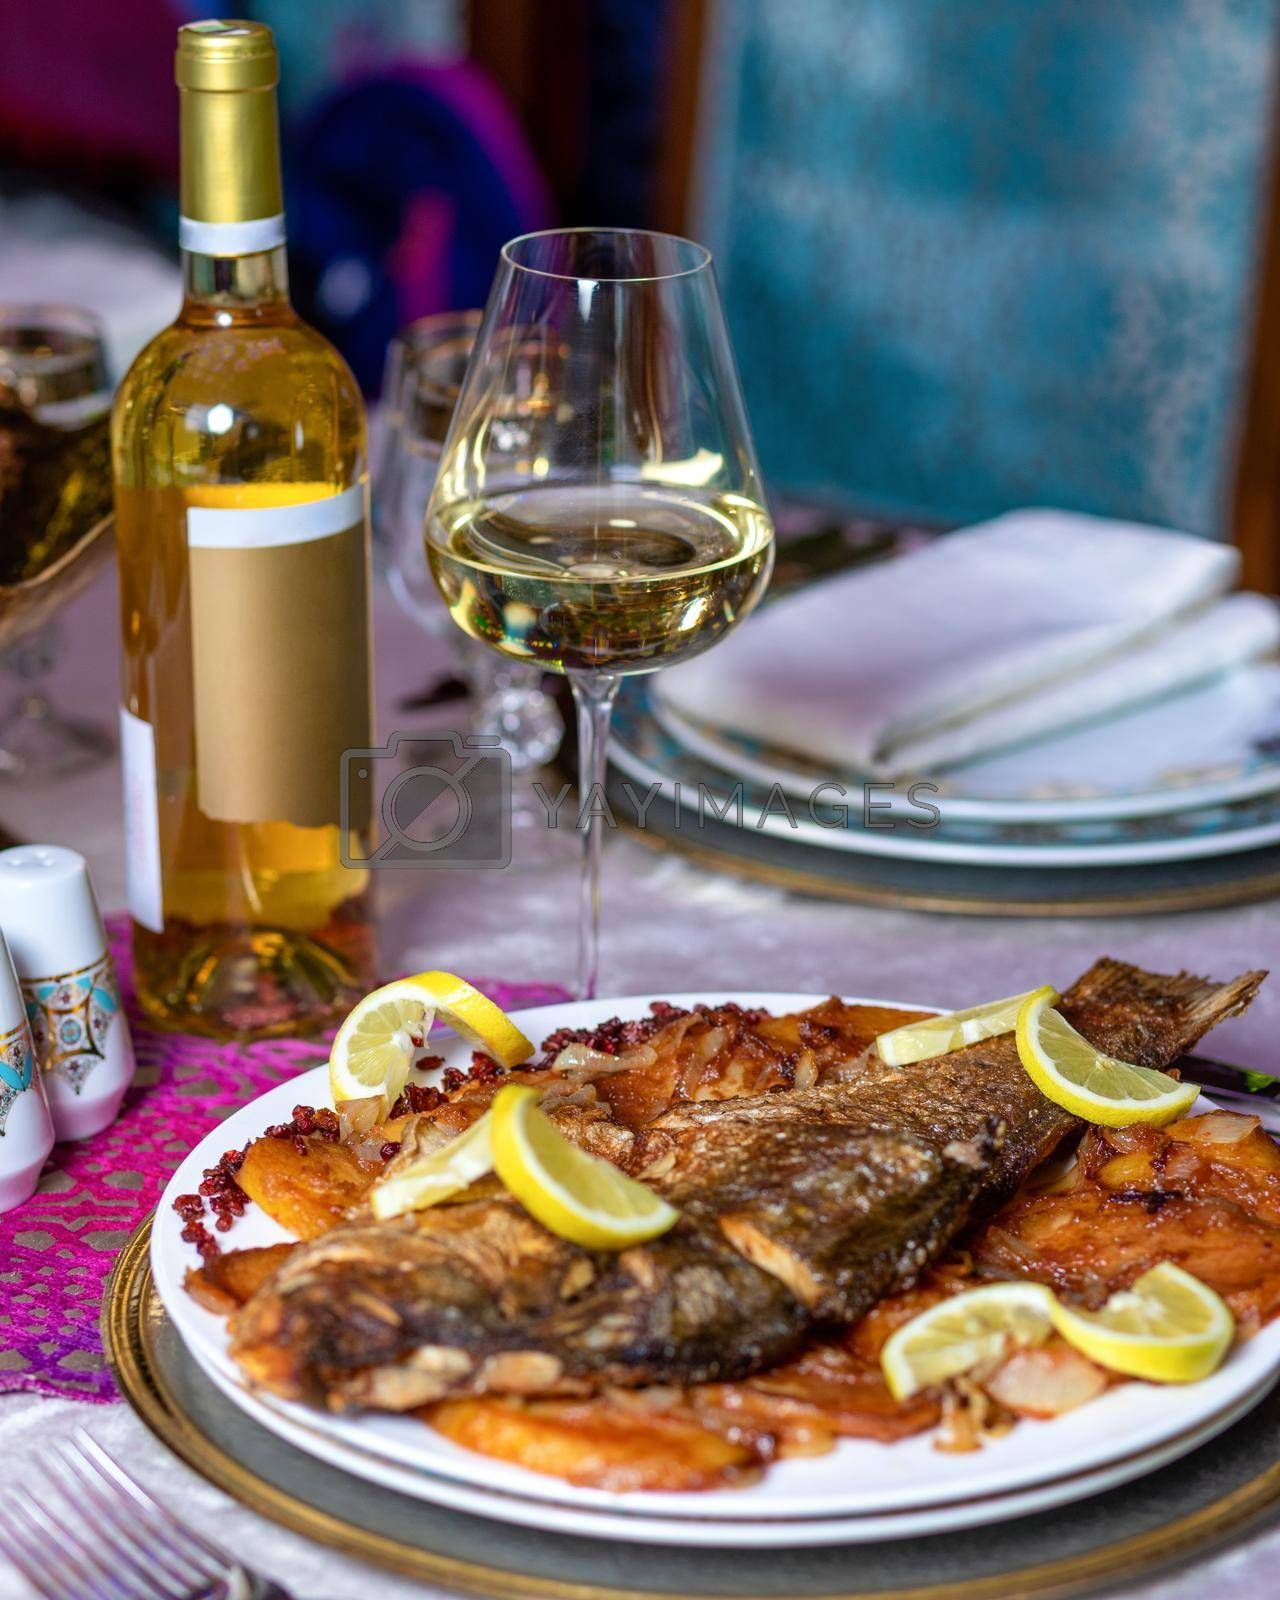 Grilled whole fish with a lemon and white wine close up